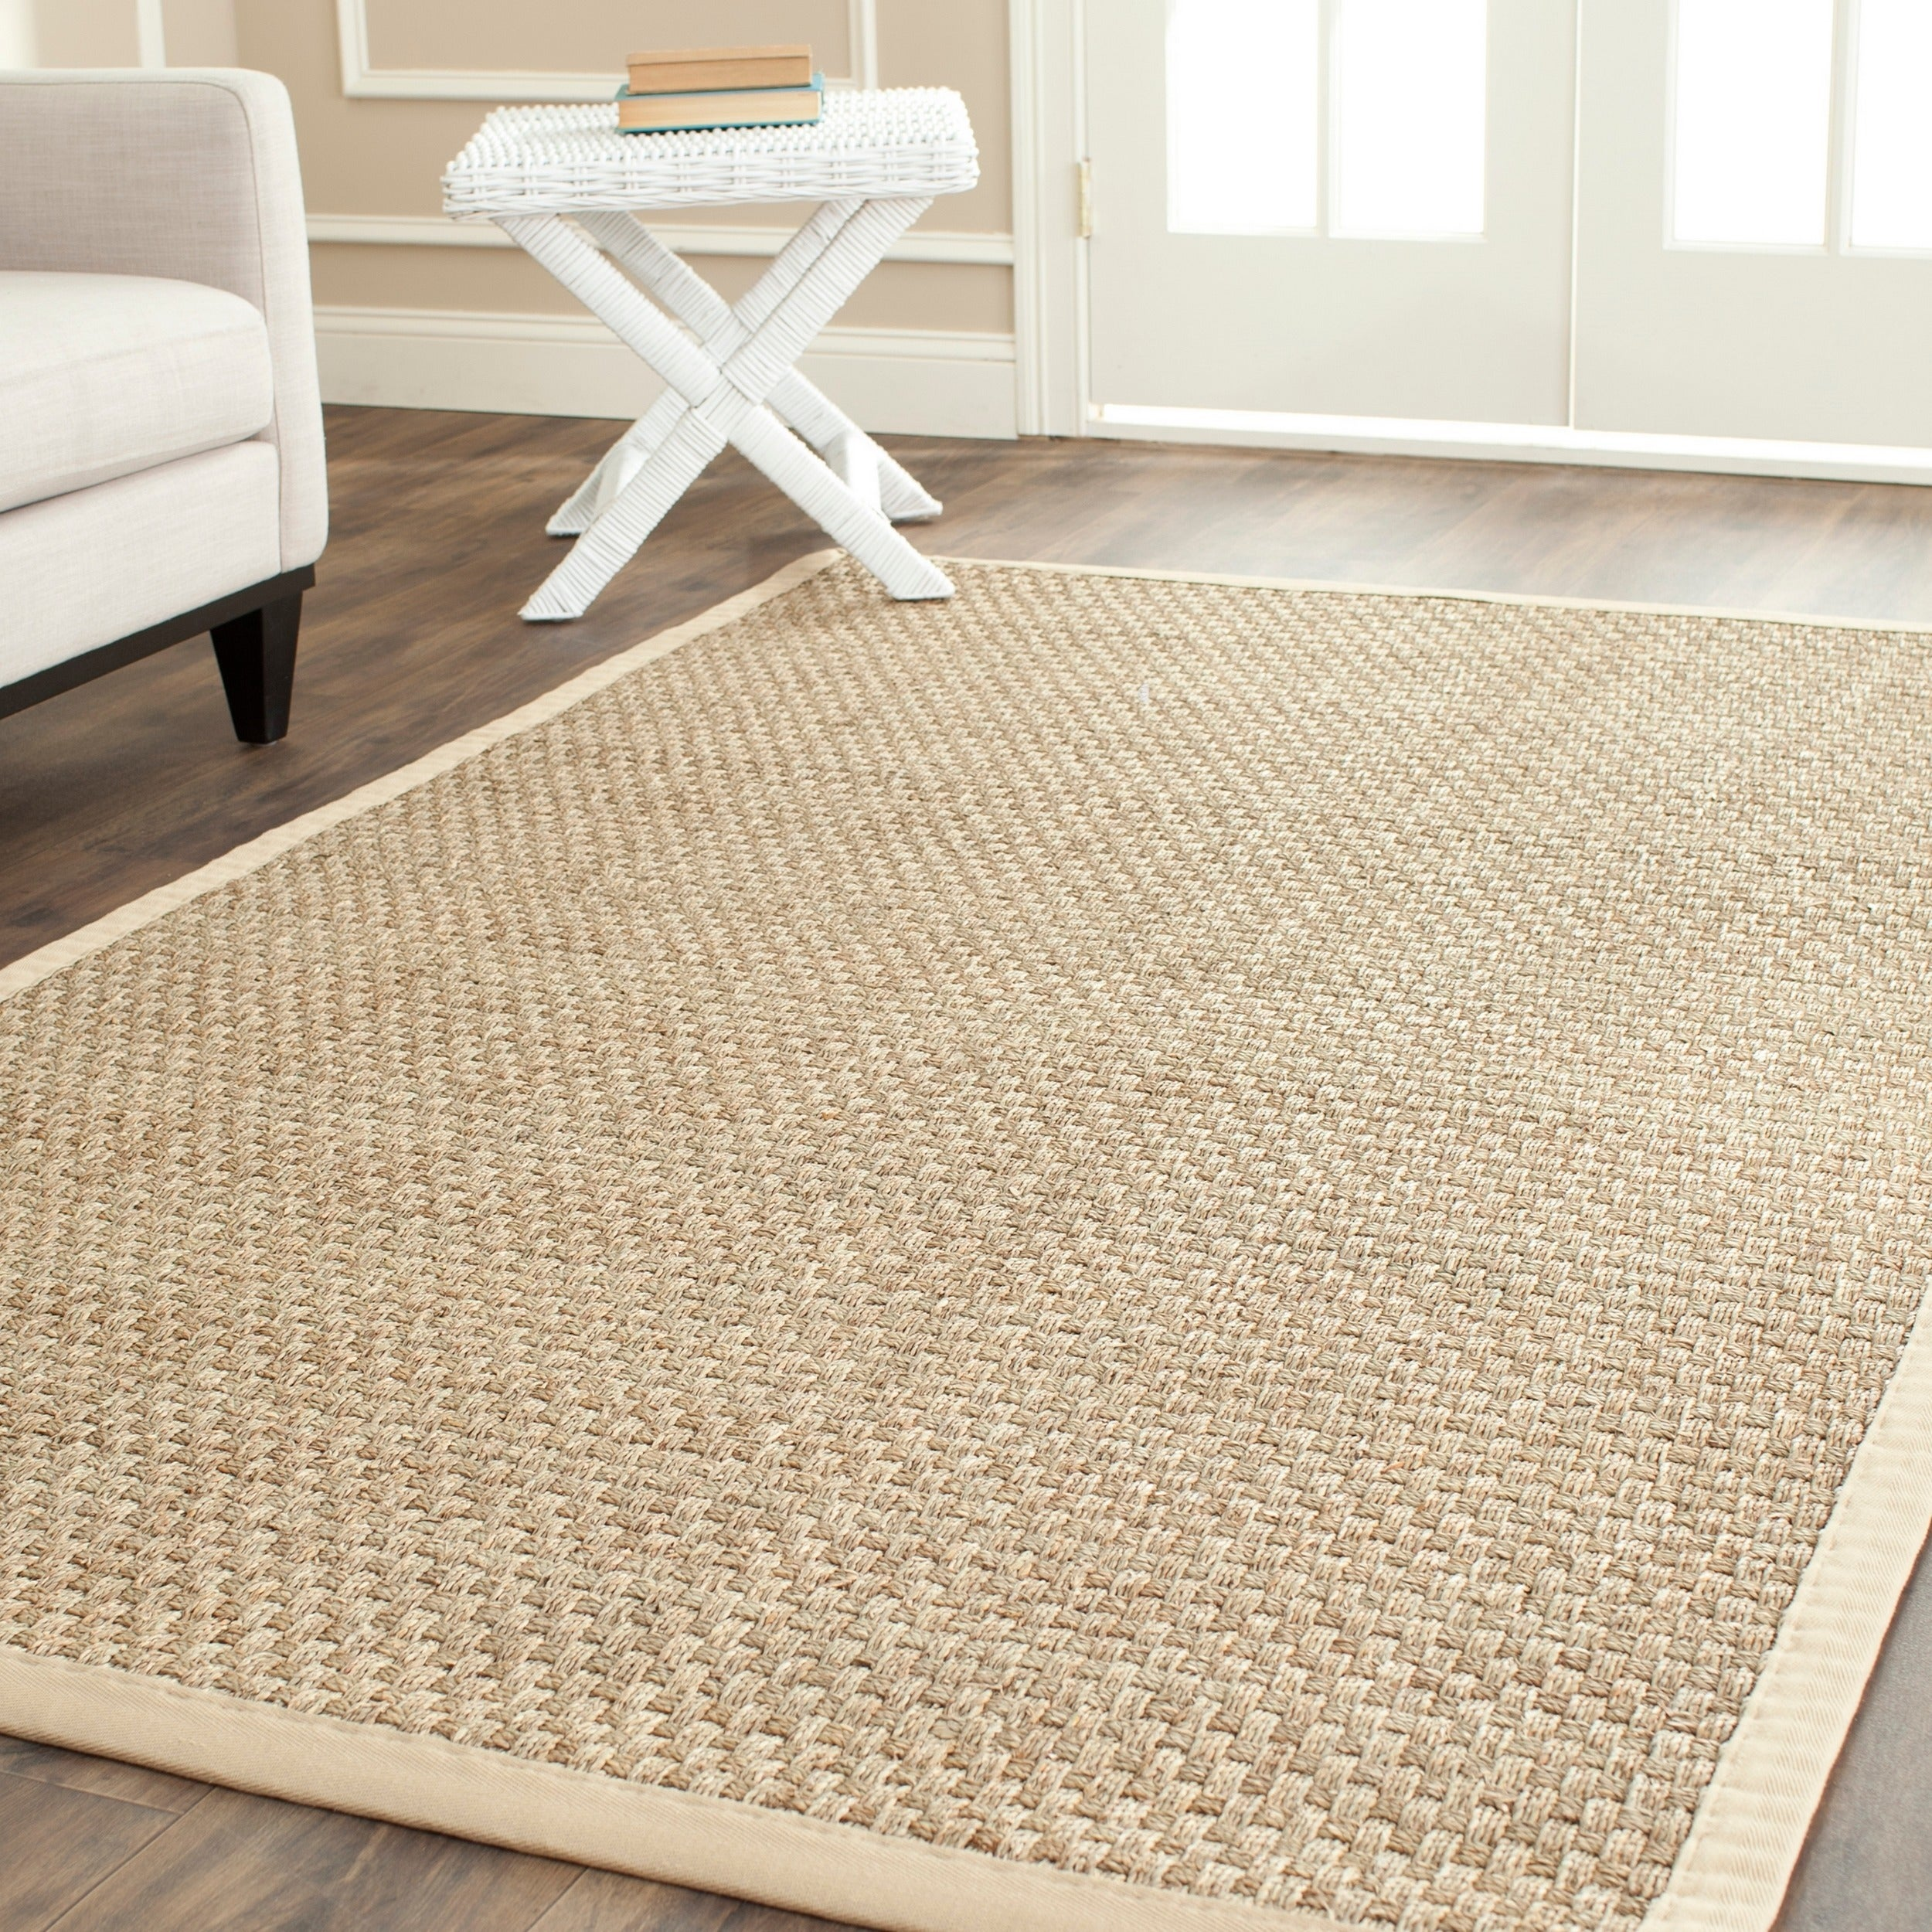 rugs ft beige fiber seagrass x rug p natural safavieh area ivory